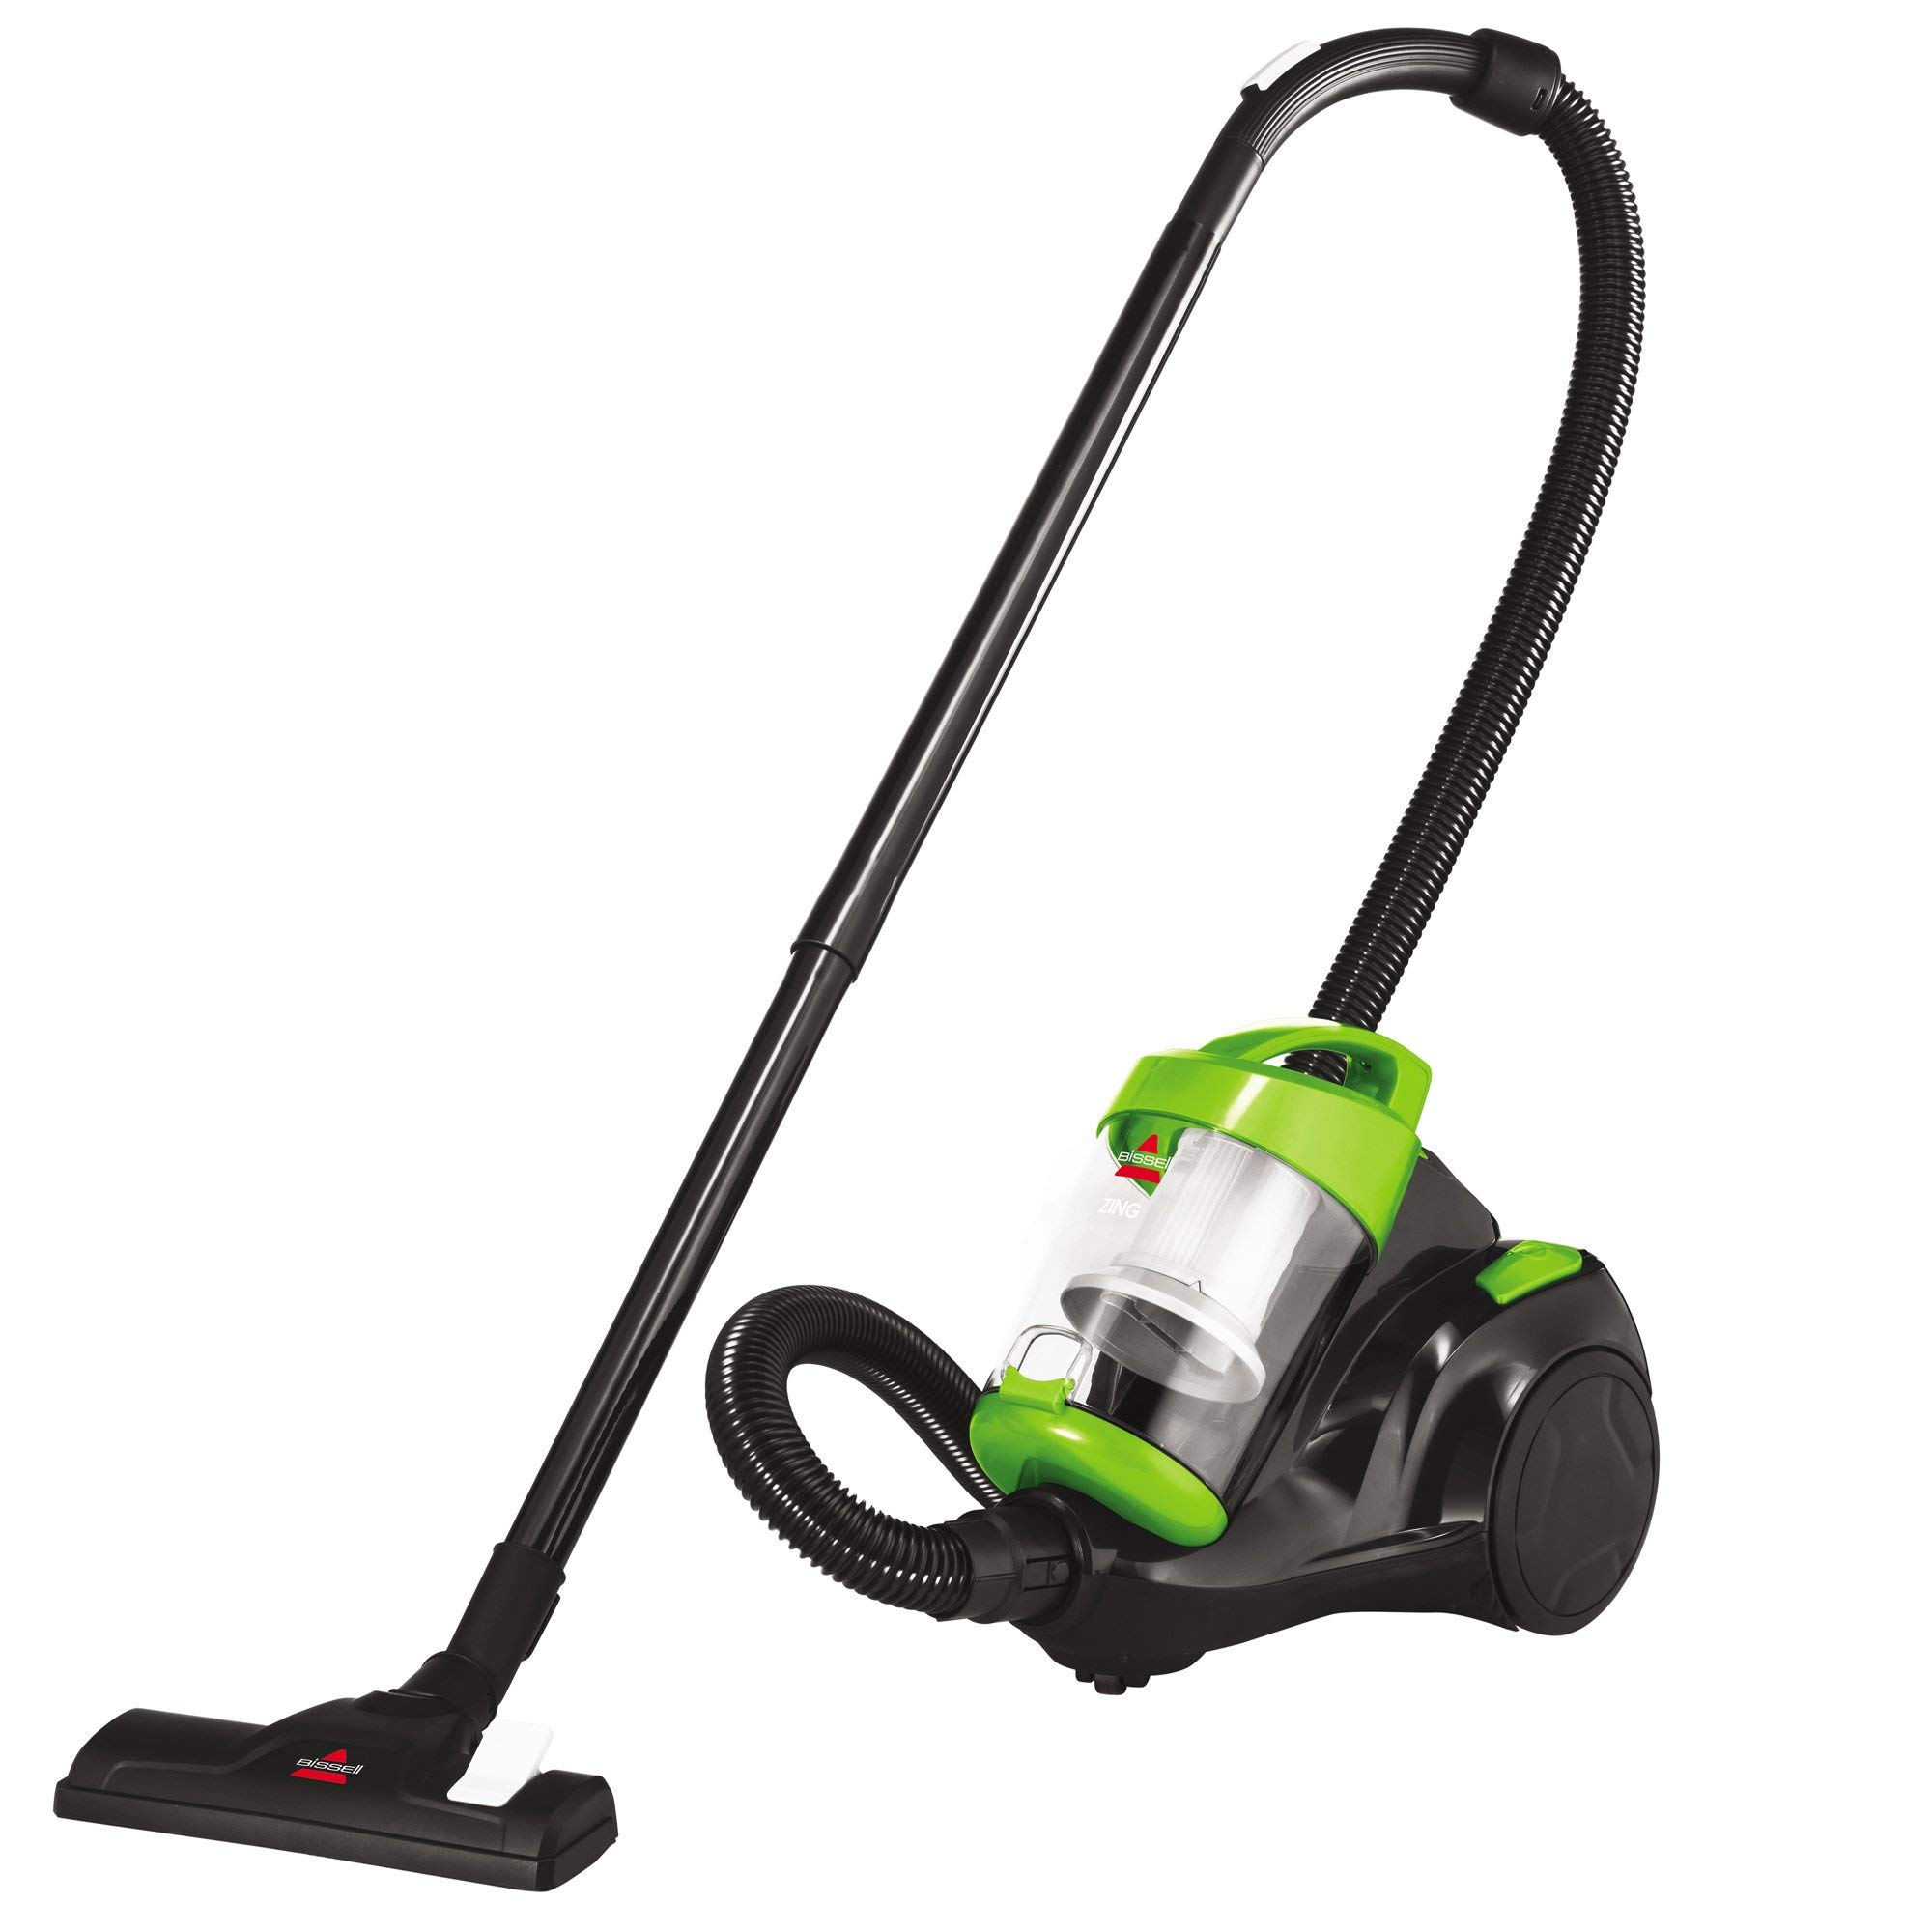 Bissell Zing Canister, 2156A Bagless Vacuum, Green (Renewed)